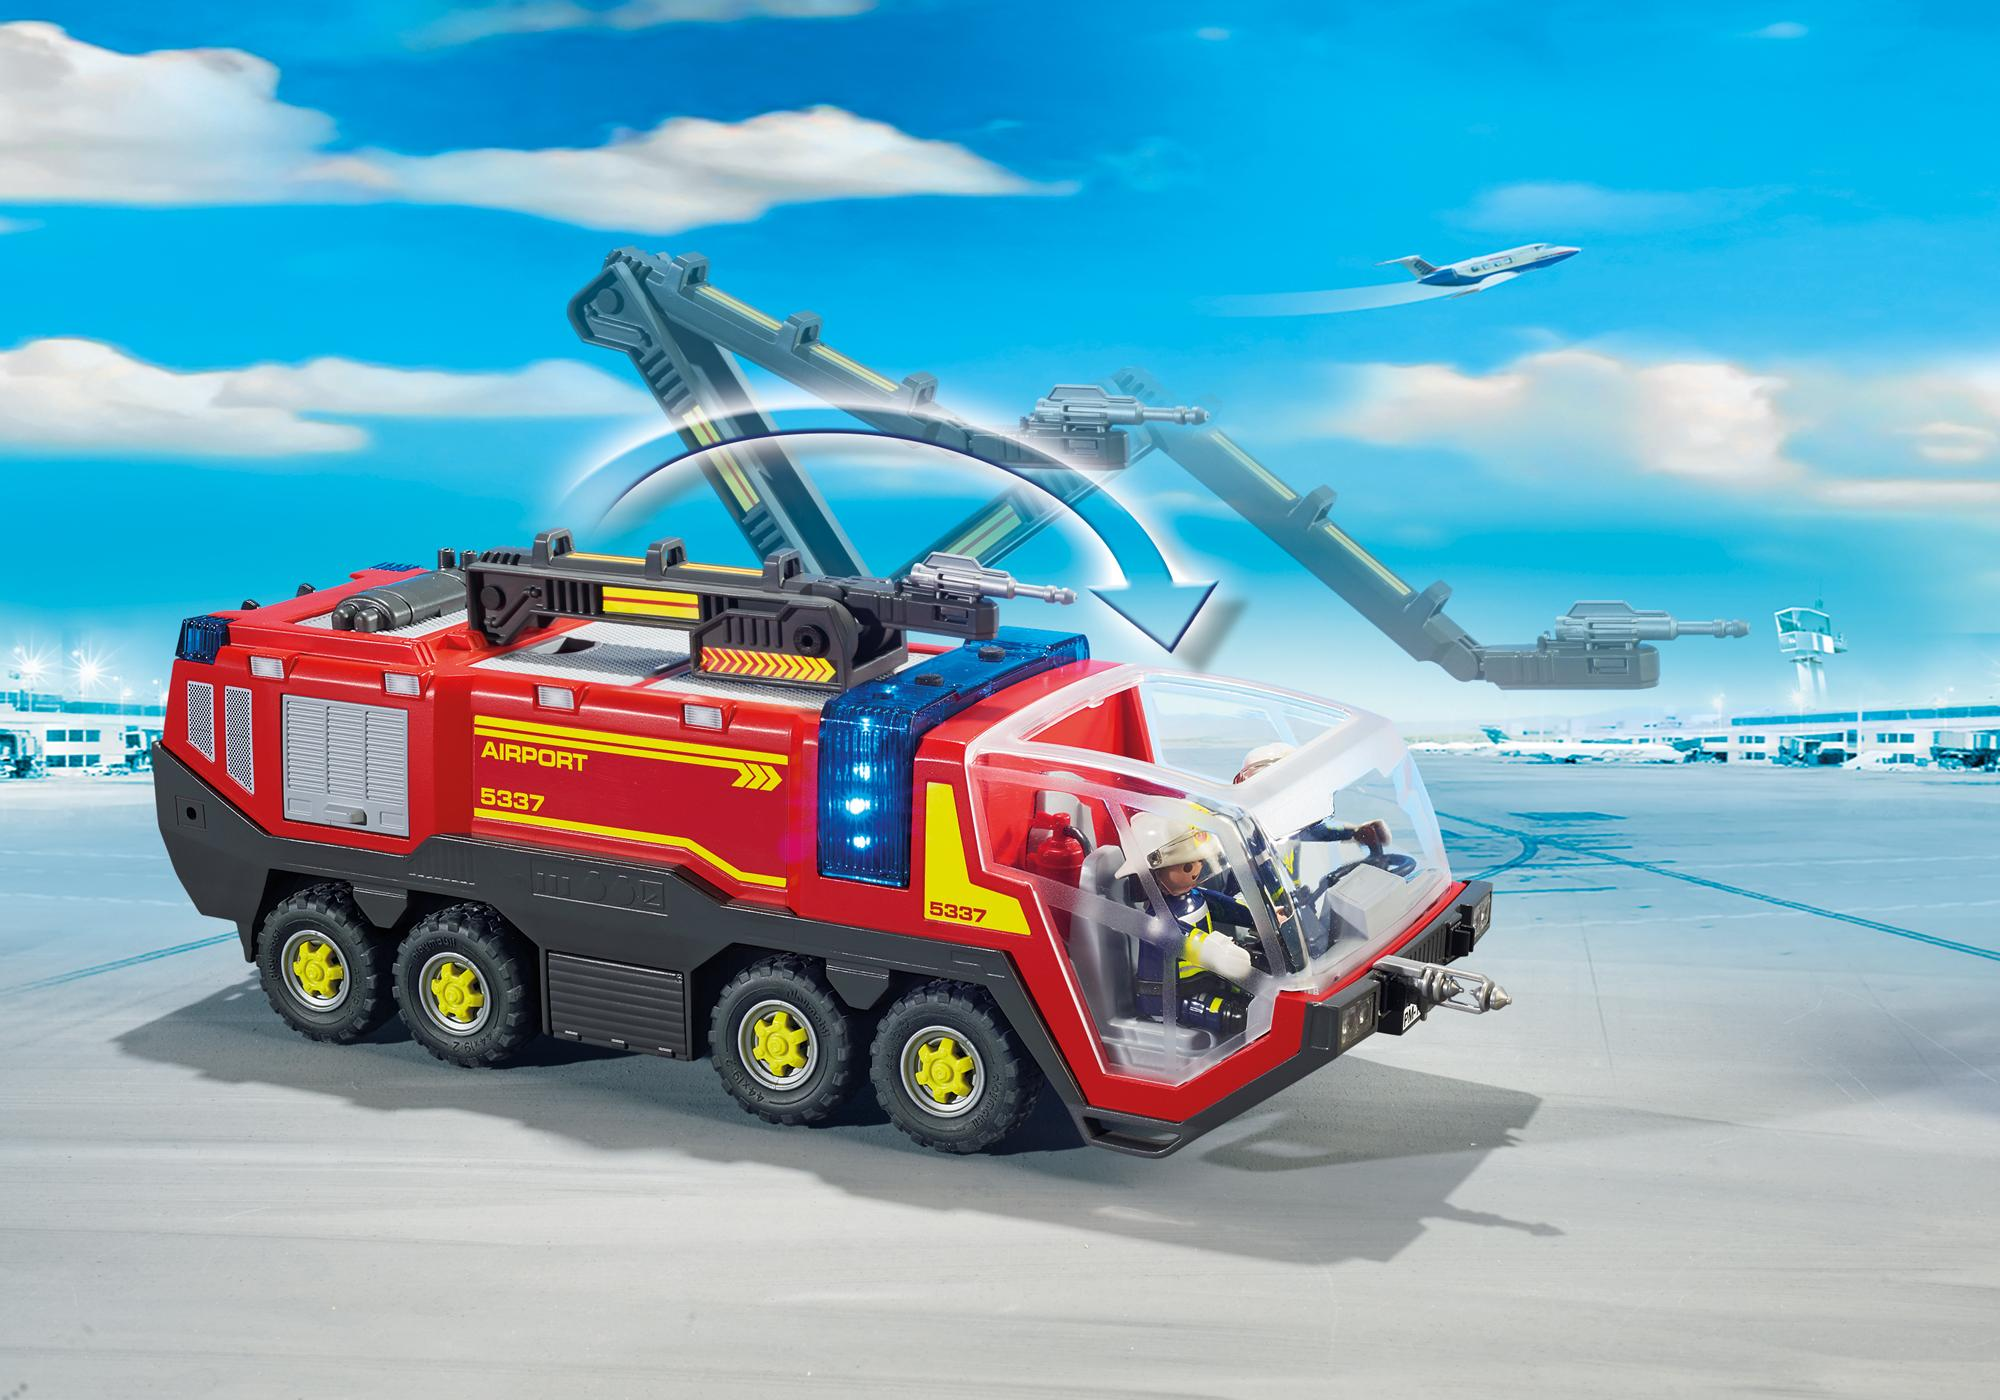 http://media.playmobil.com/i/playmobil/5337_product_extra4